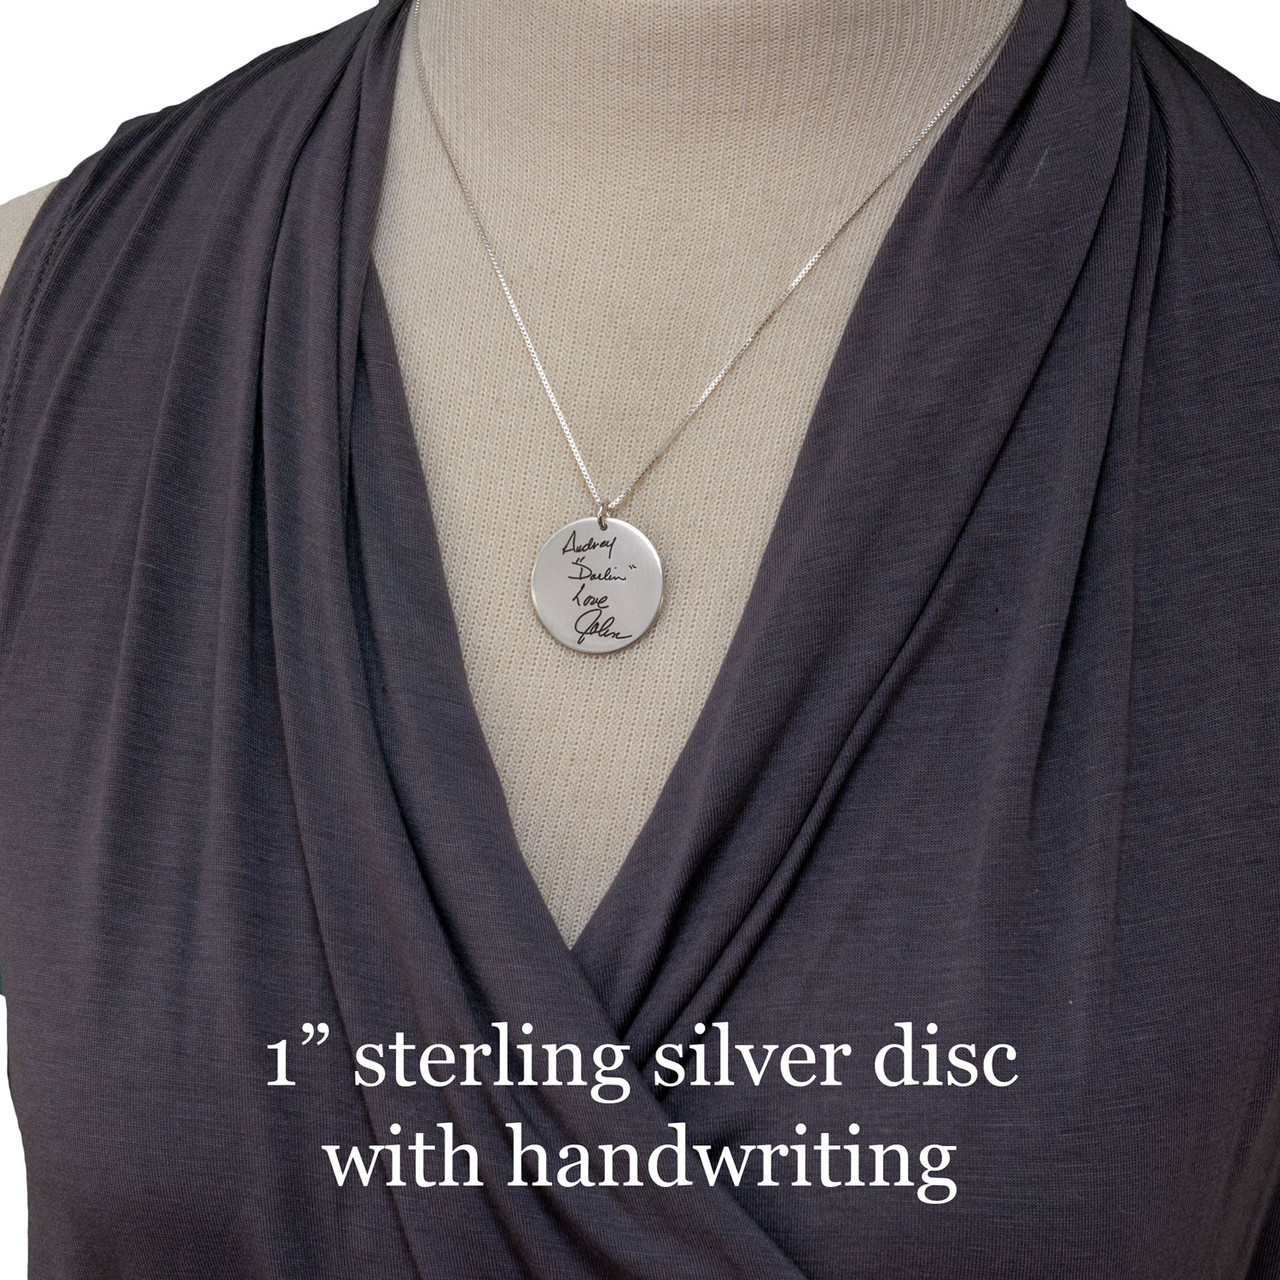 "1"" sterling silver disc with handwriting shown on a model"